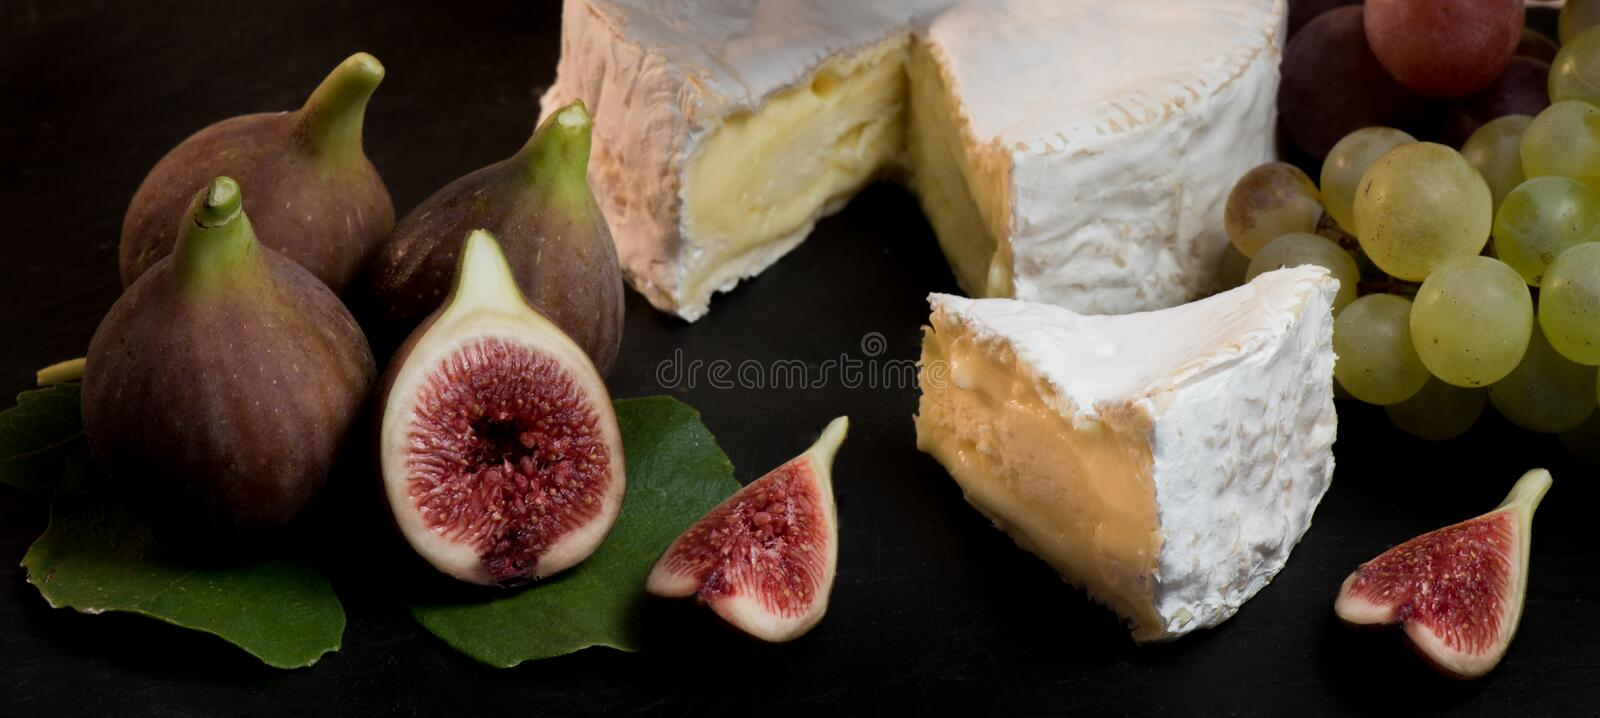 Cheese with fresh figs, camenbert on black background. Cheese with fresh figs, camenbert, France royalty free stock photo